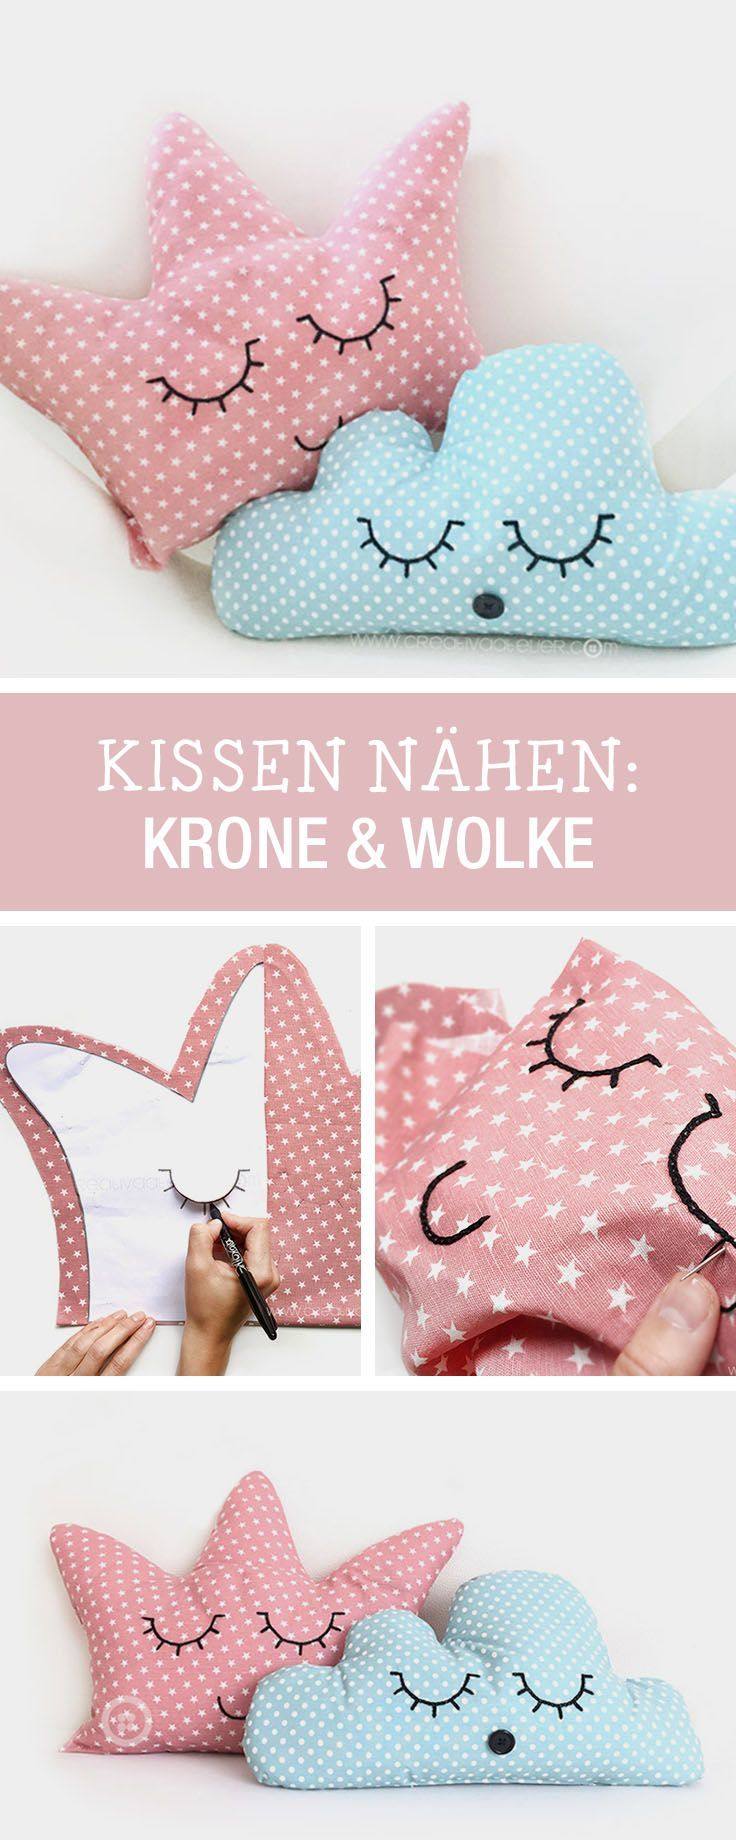 DIY-Anleitung: Kissen als Krone und Wolke für kleine Prinzessinnen nähen, Kinderzimmerdeko / DIY tutorial: sewing pillow as crown and cloud for little princesses, children's room decor via http://DaWanda.com